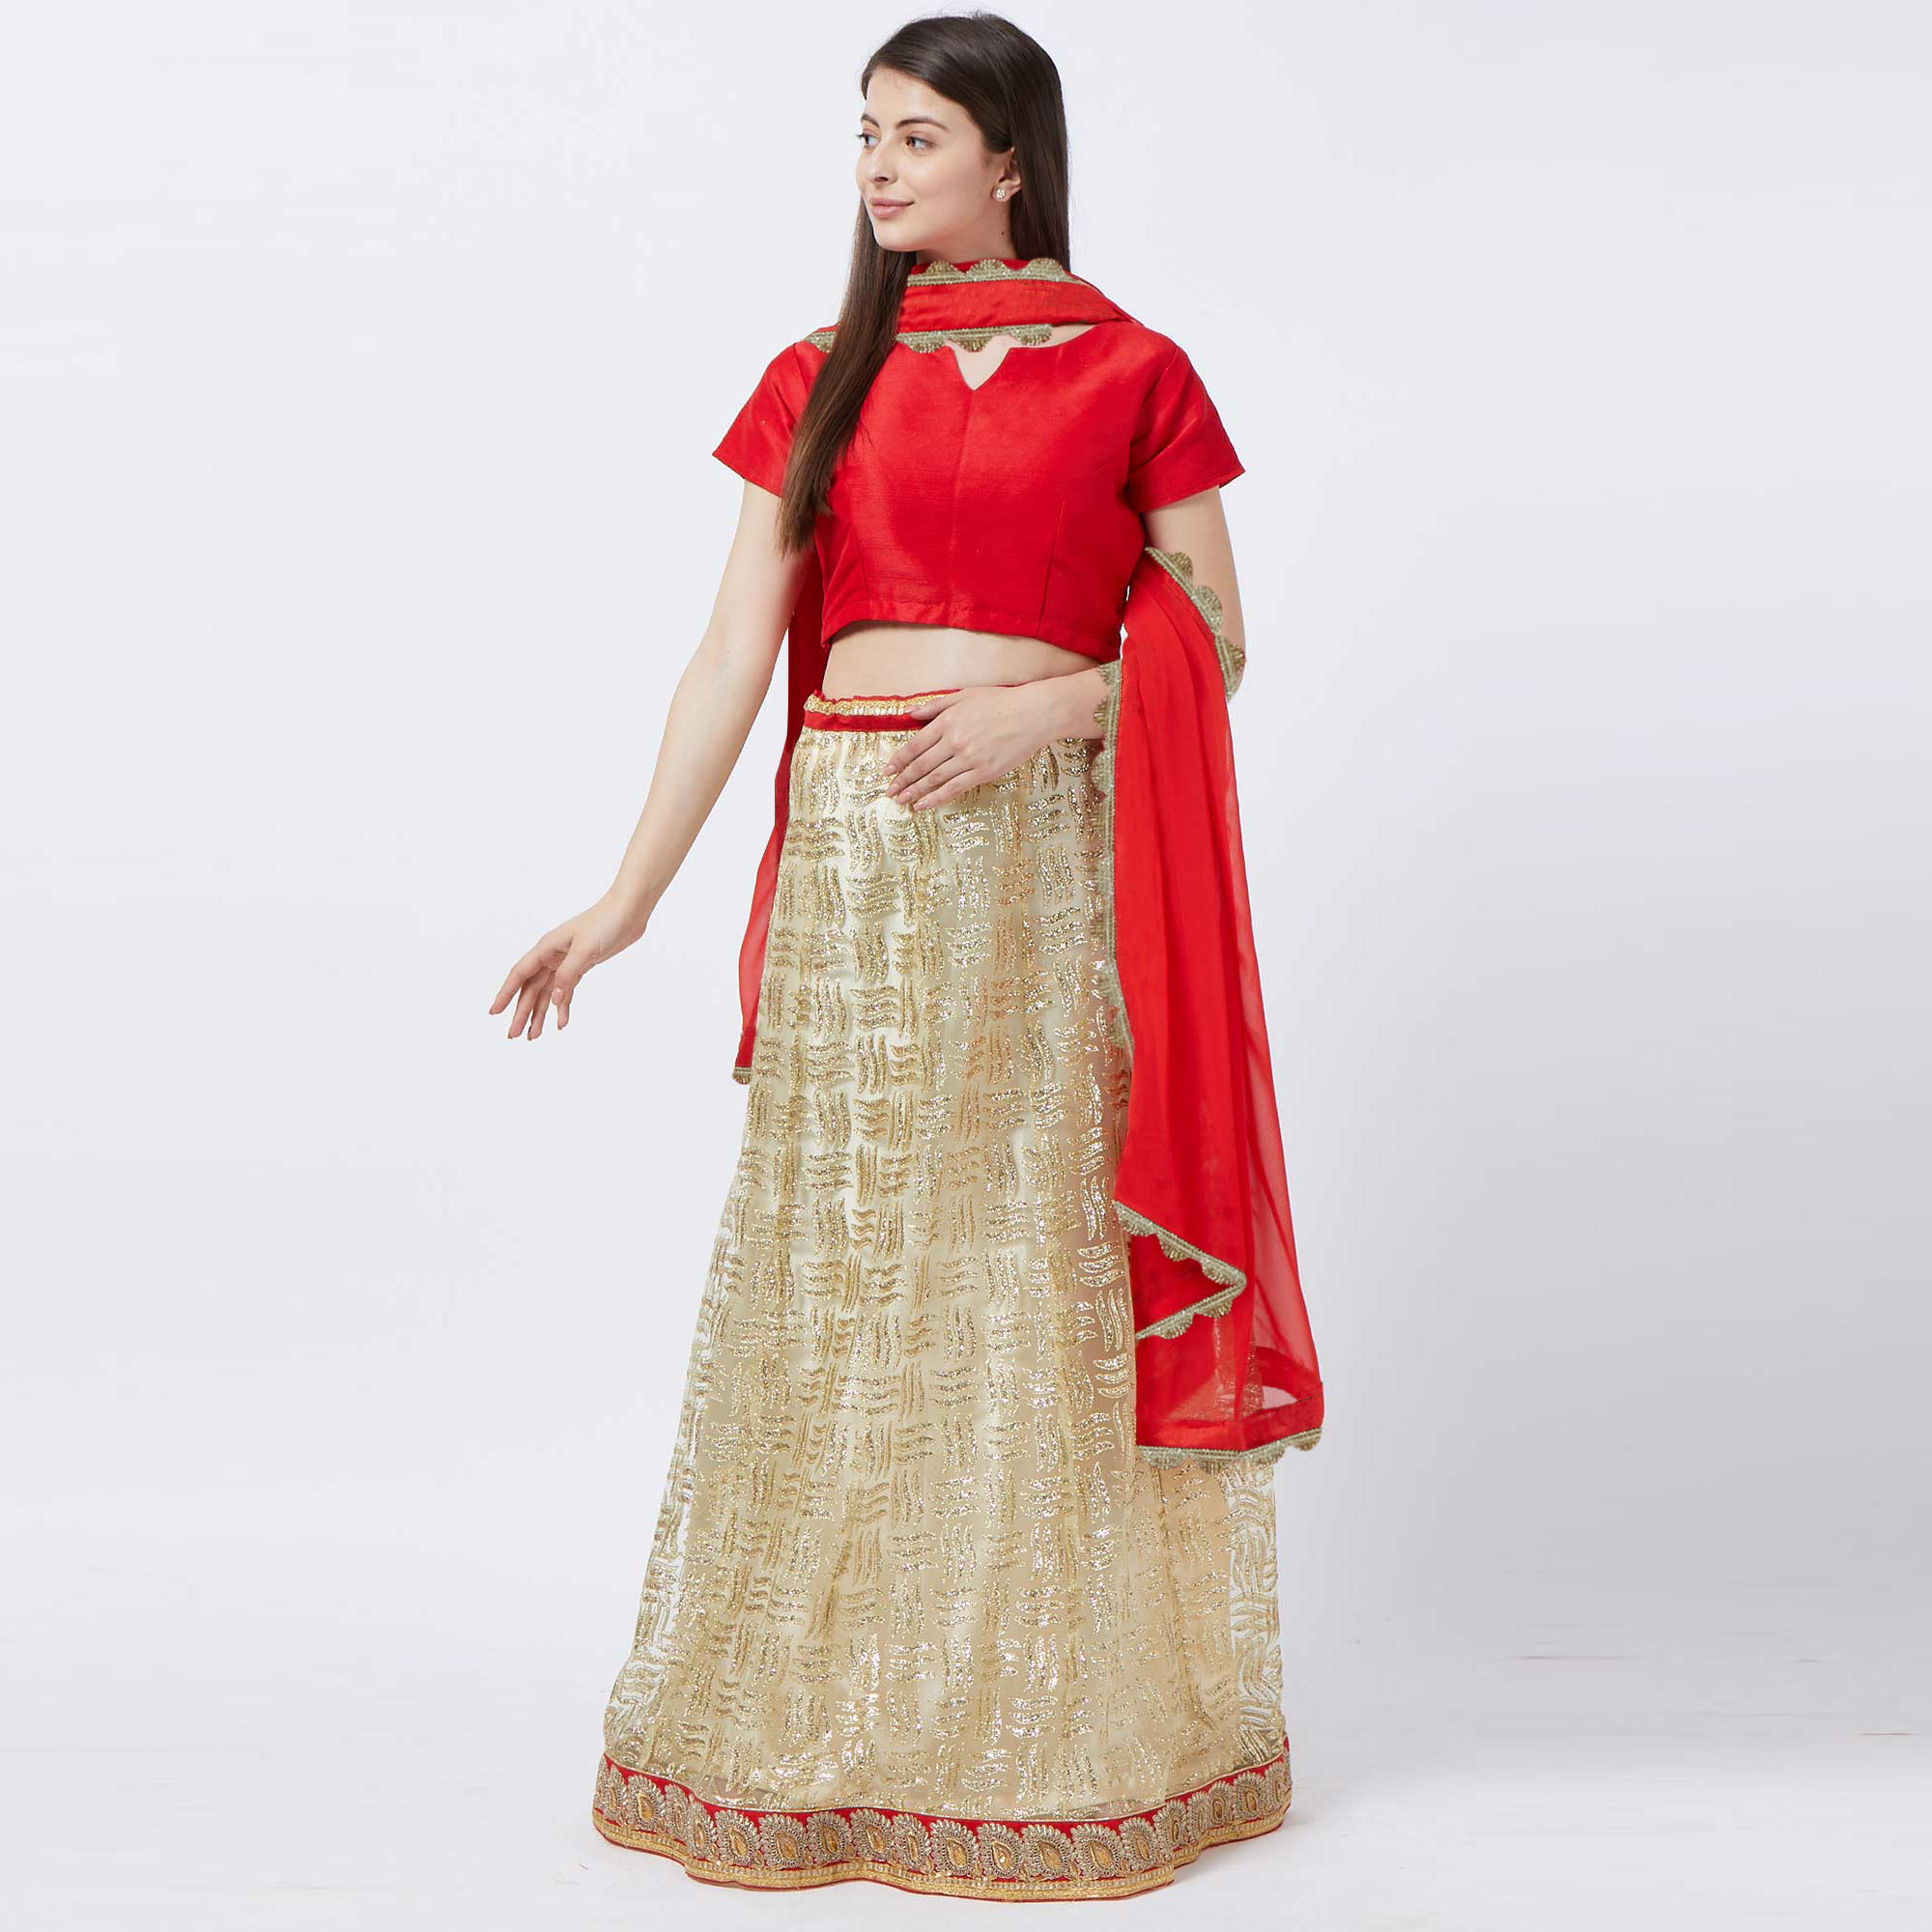 Marvellous Cream Colored Partywear Embroidered Netted Lehenga Choli